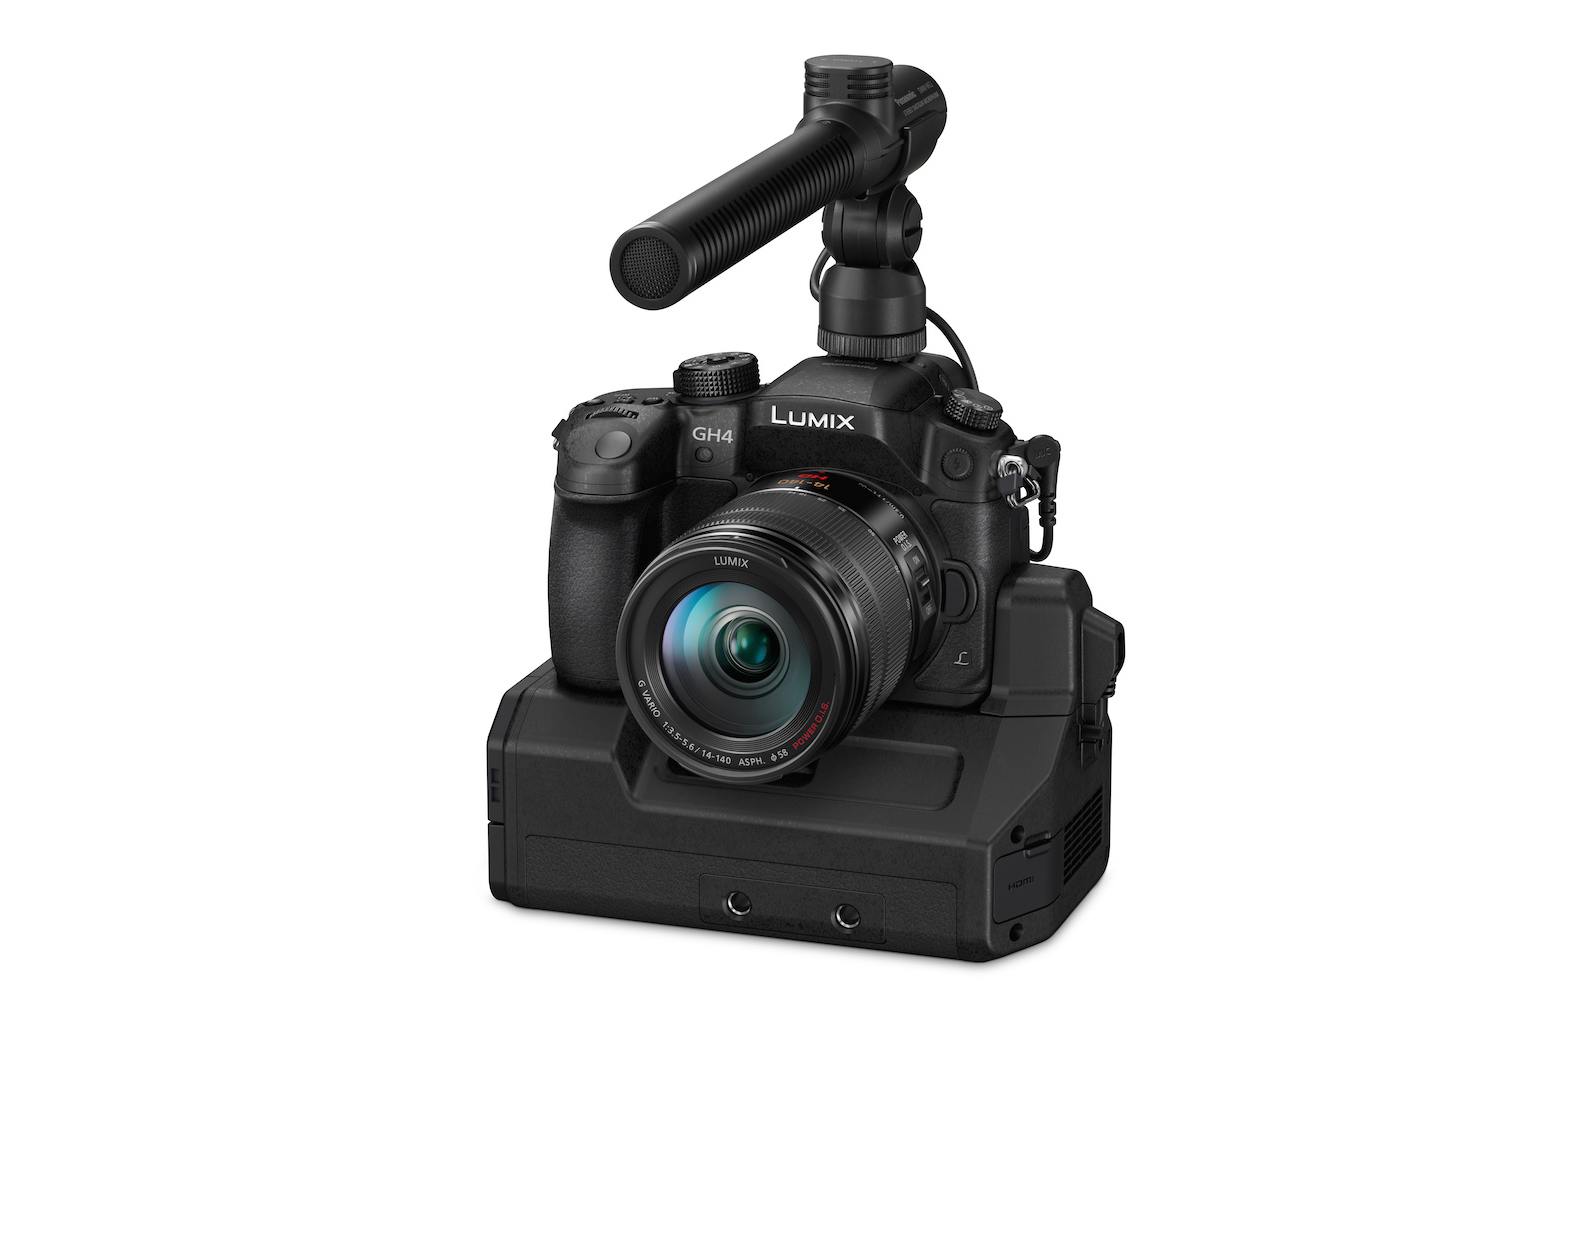 Panasonic DMC-GH4 beefs up for production with optional DMW-YAGH Interface Unit with 4 x HDSDI out, 2 x XLR in, TC in, 12V DC in, and audio controls including volume knobs.